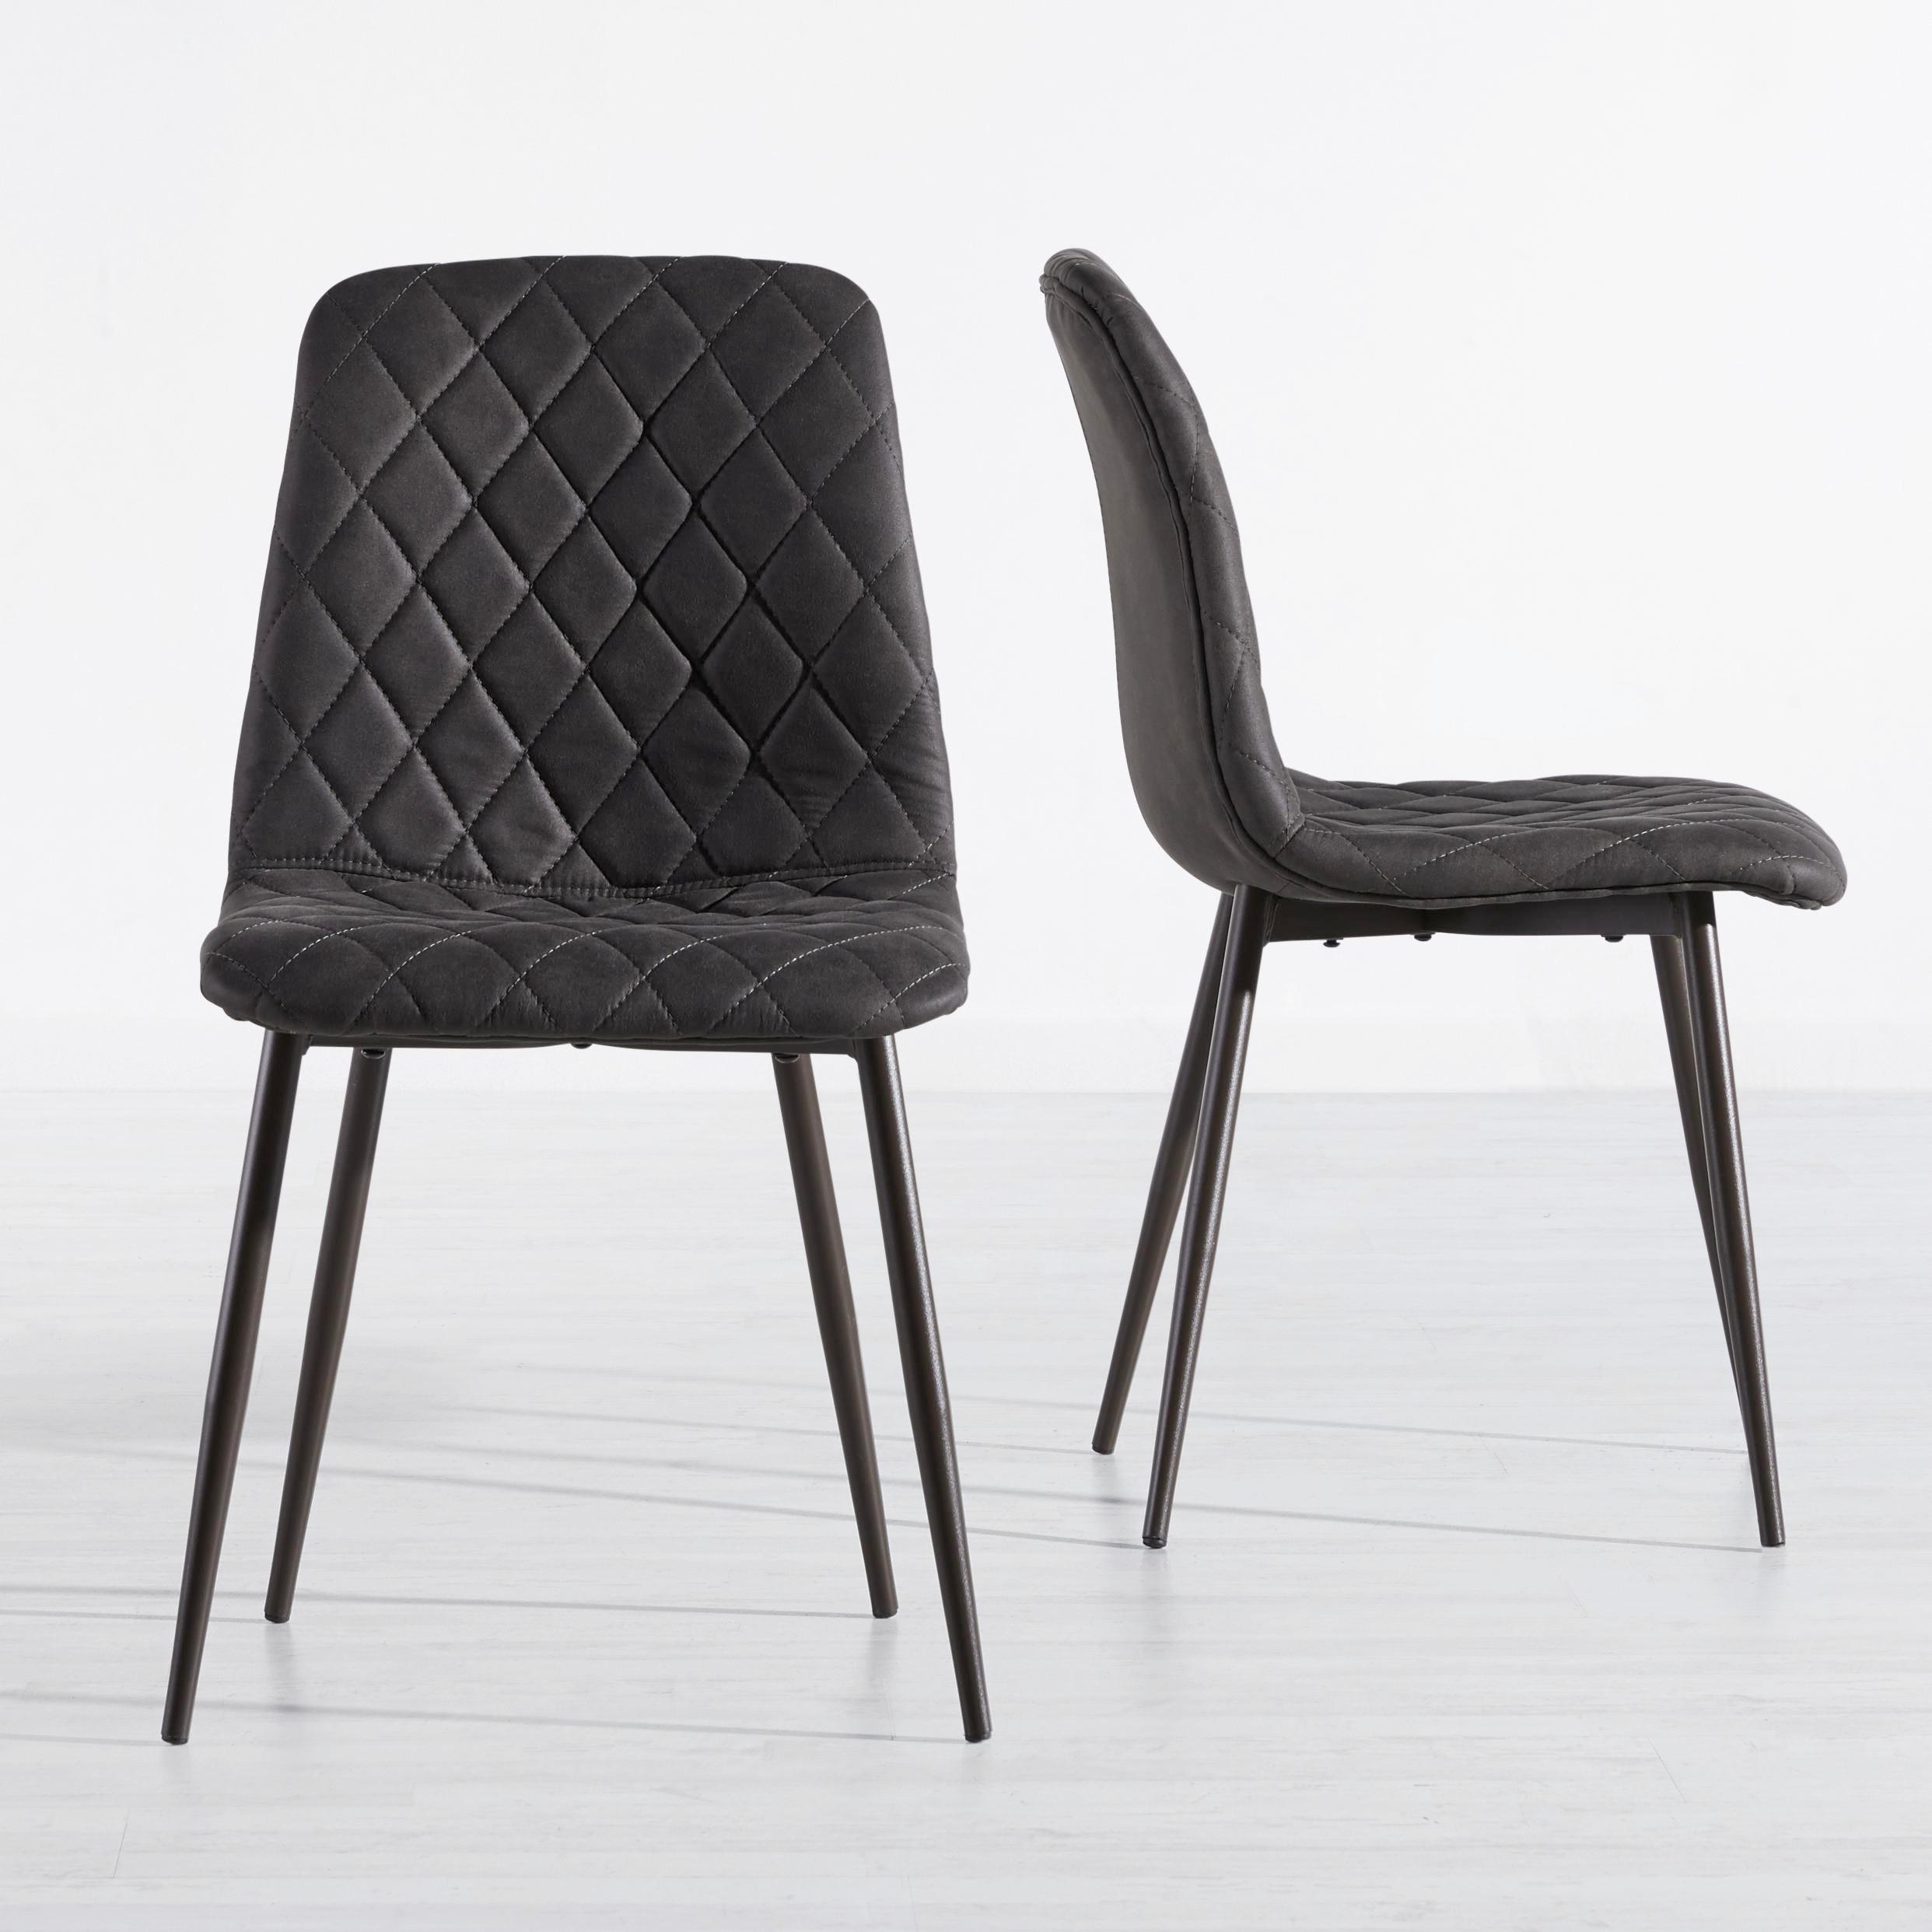 stuhl ei gallery of the wishbone chair was one of the very first models hans j wegner designed. Black Bedroom Furniture Sets. Home Design Ideas